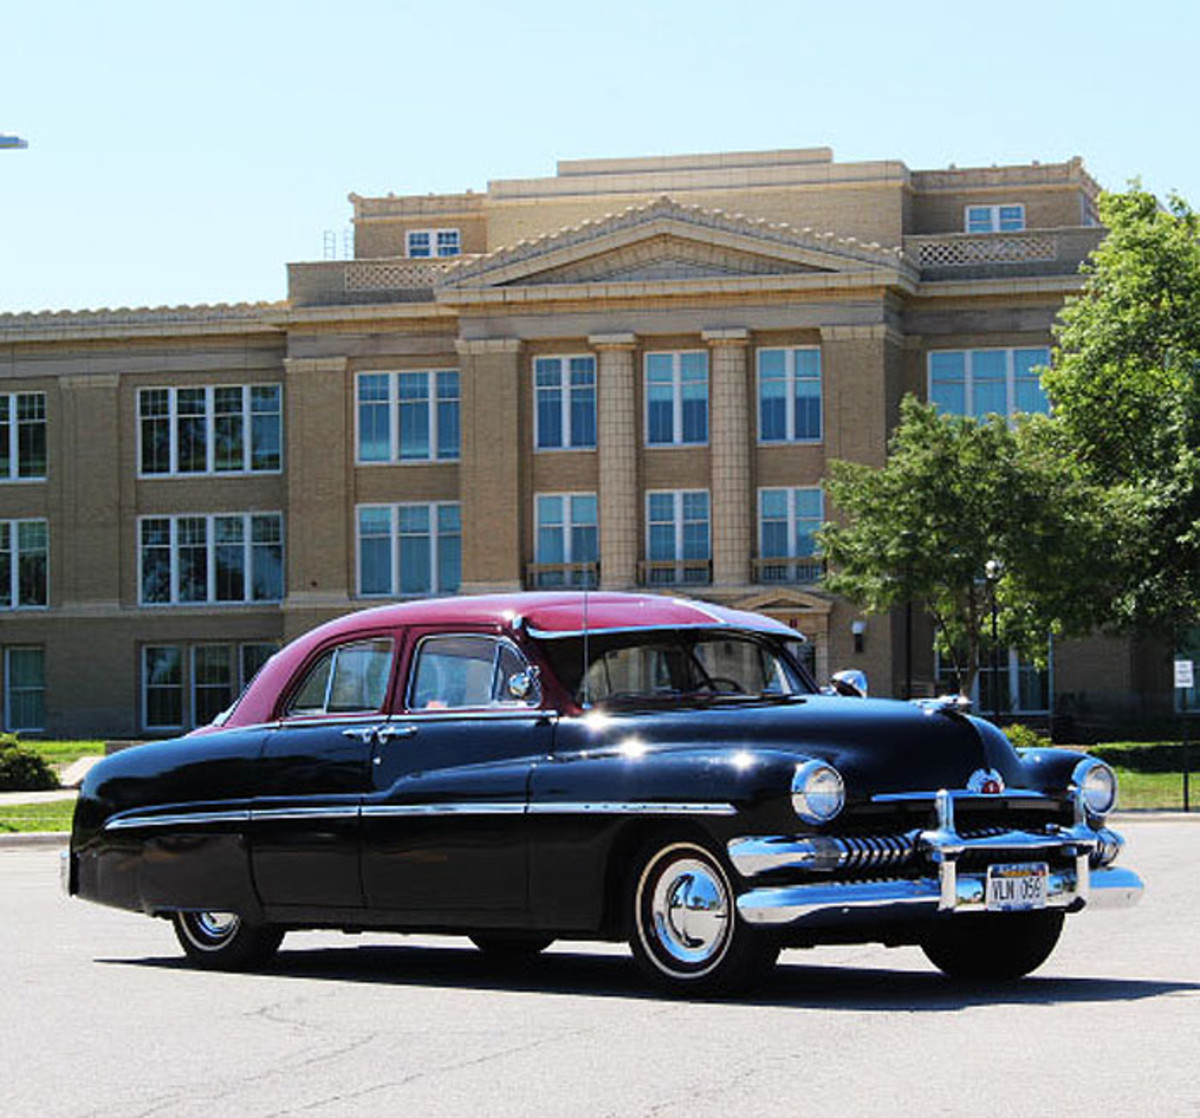 Bob Hubbard fell in love with a 1951 Mercury sedan while in high school. This is neither the same Mercury nor the same school, but is certainly a fitting background for Hubbard's history with his 1951 Mercurys.